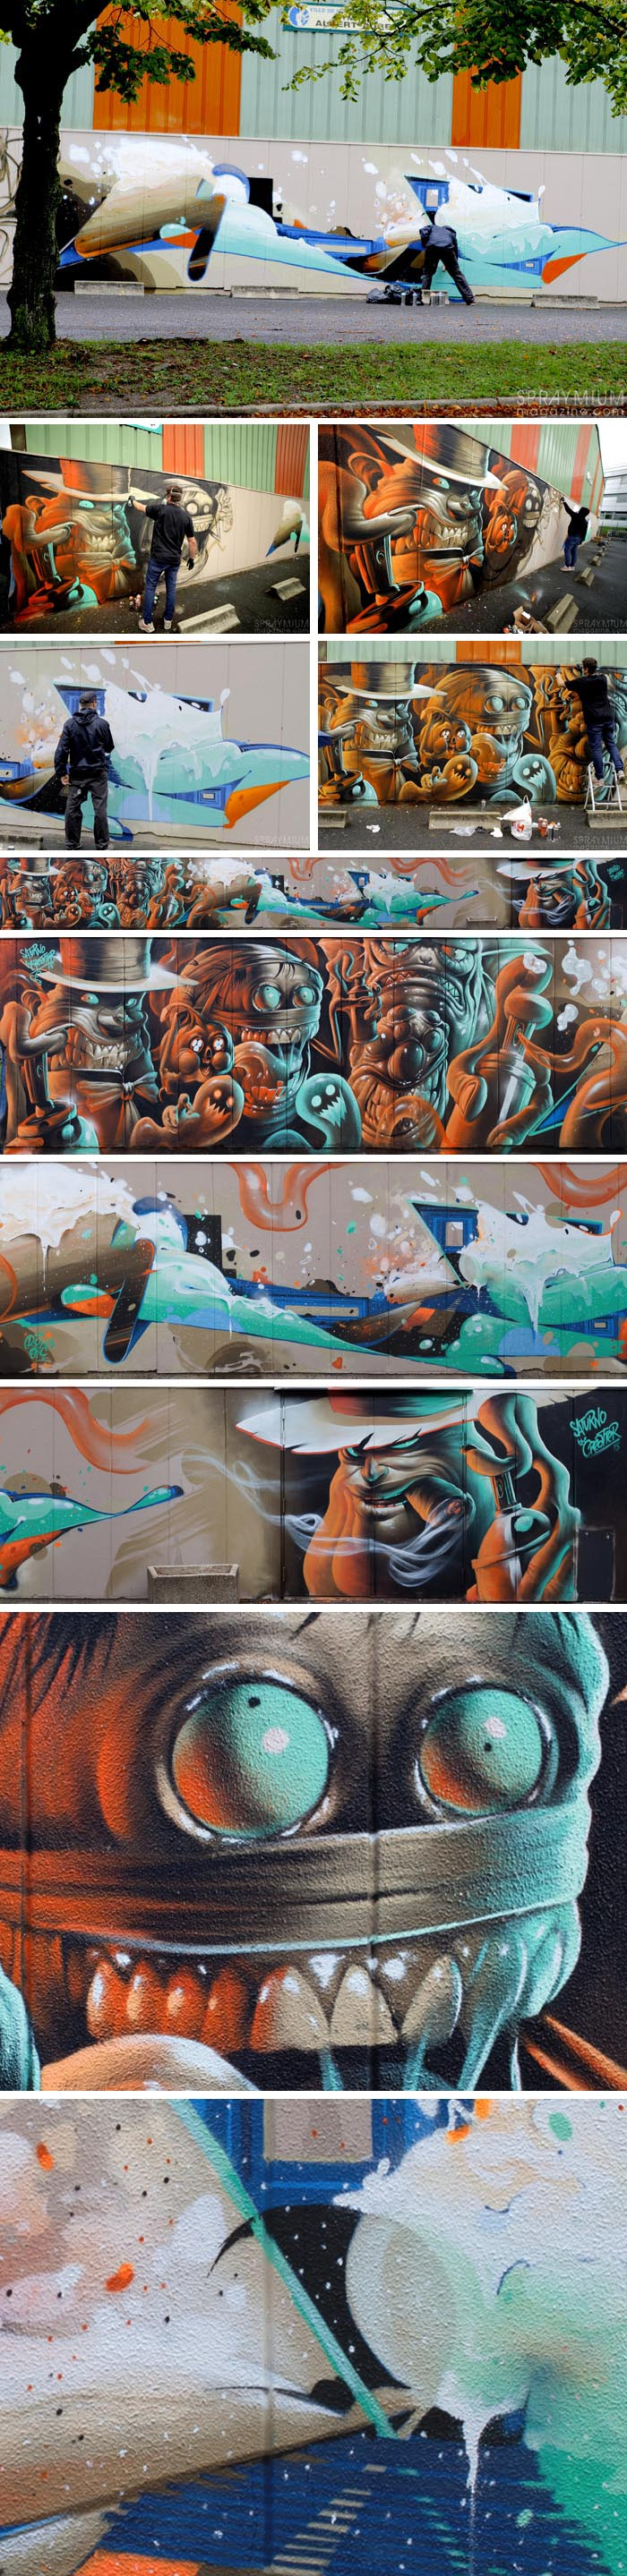 artauxgants spraymium festival graffiti writing art11 spraycanart rens saturno